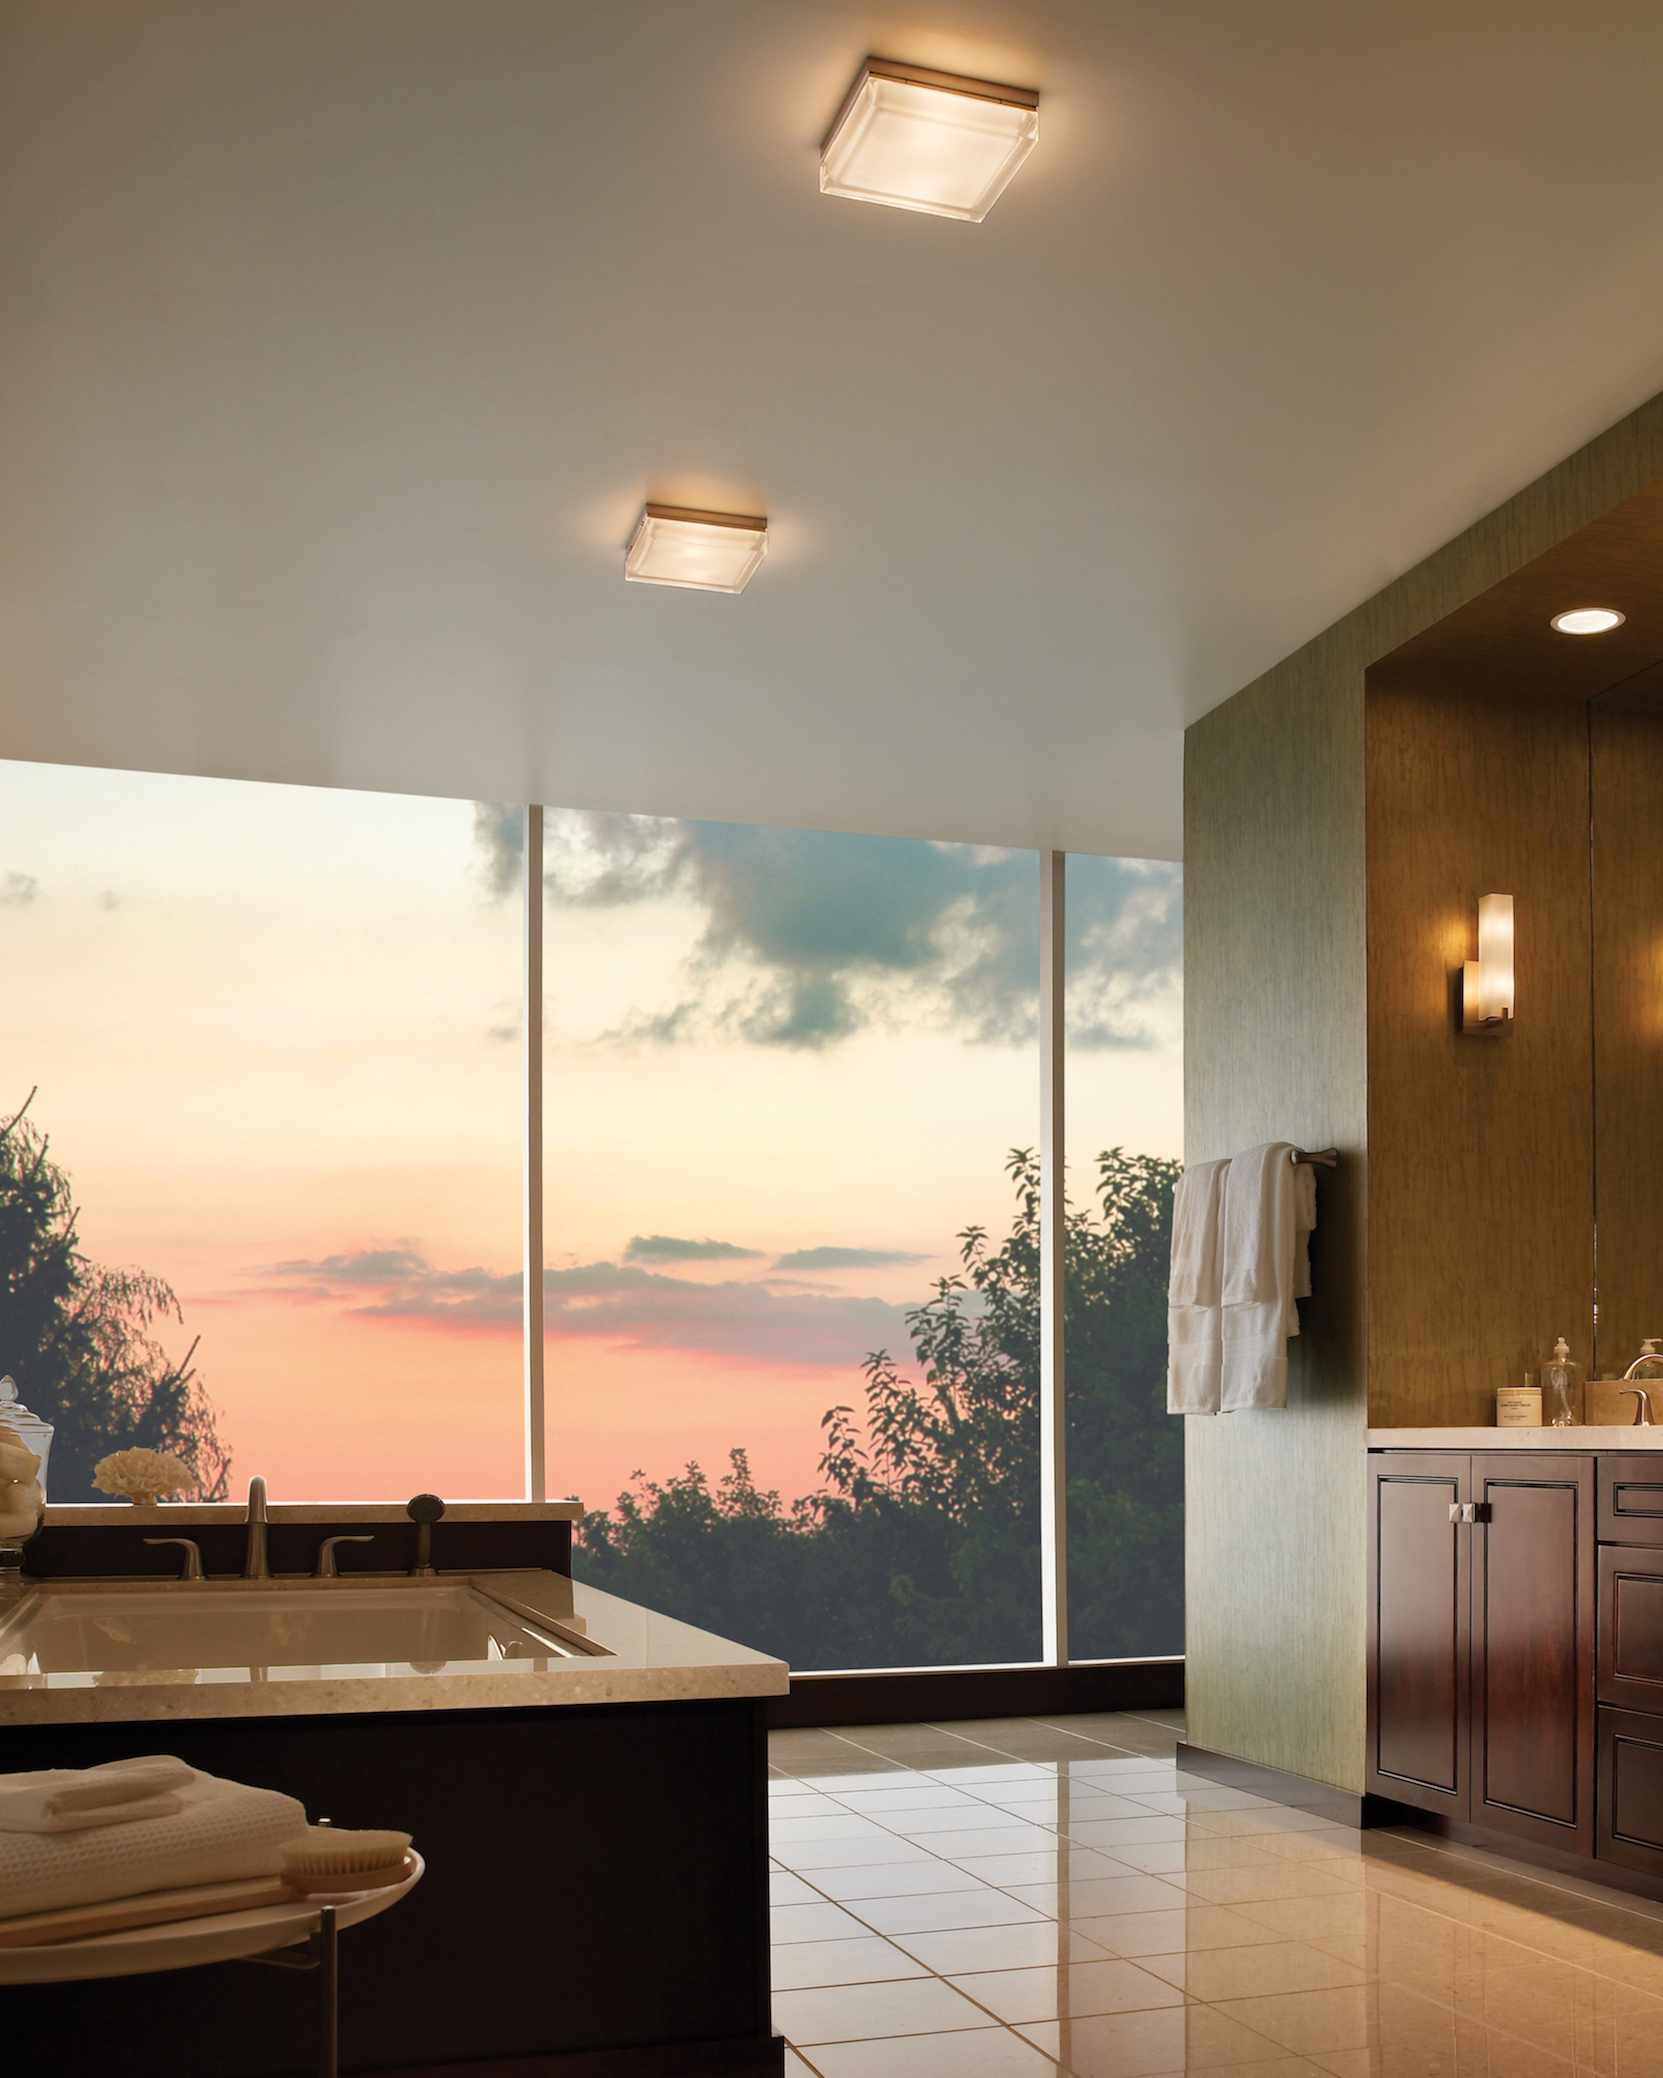 Designer Bathroom Lighting Fixtures bathroom lighting buying guide | design necessities lighting